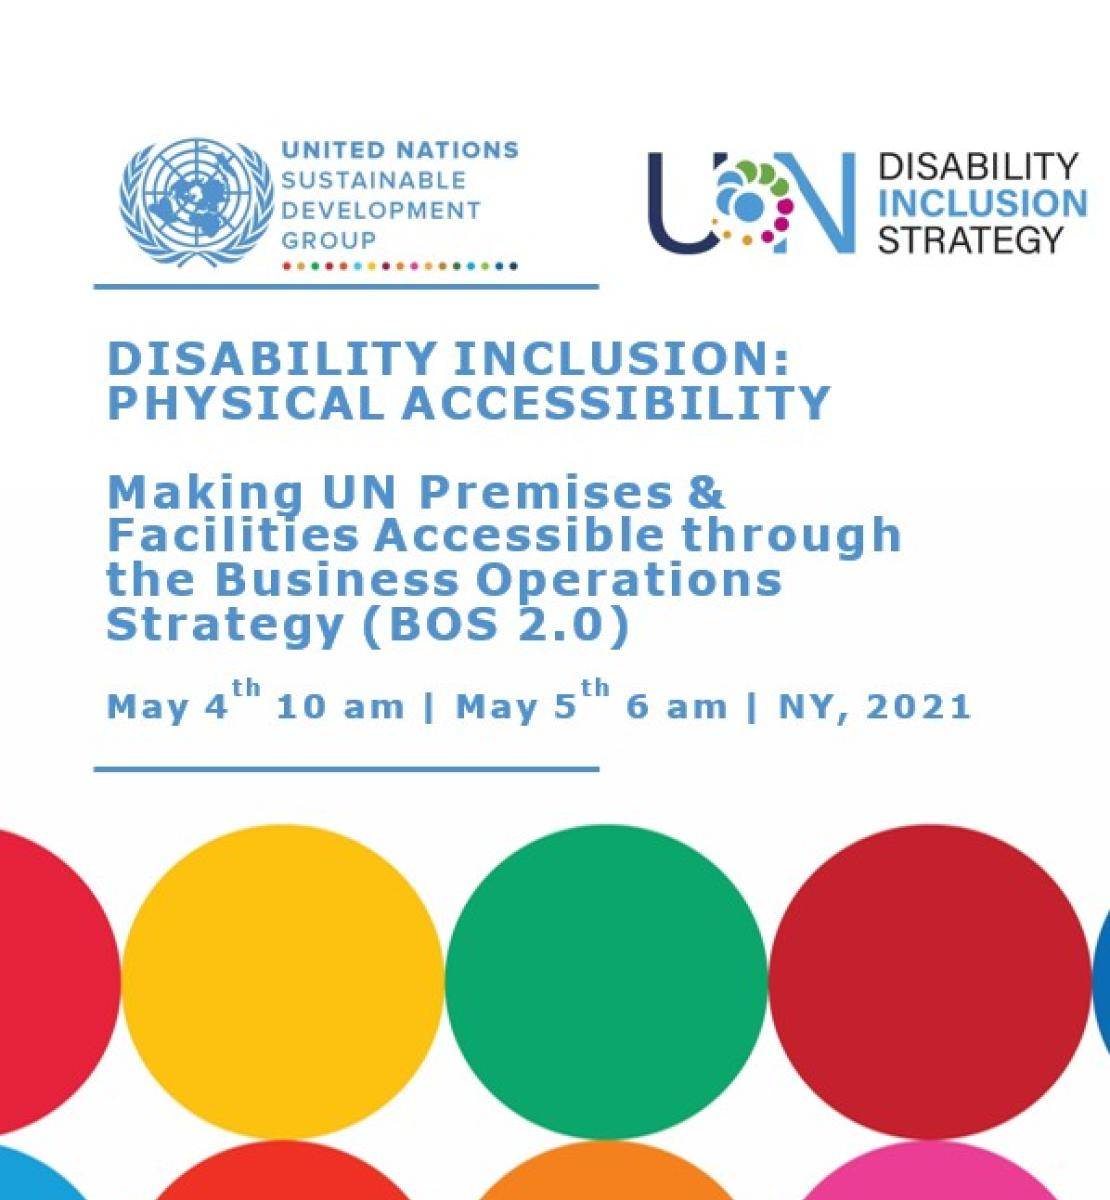 The images shows the title of the presentation: Disability Inclusion Physical Accessibility: Making UN premises and facilities accessible through the Business Operations strategy. There is a UNSDG and UNDIS logo and decorative SDG circles at the bottom.